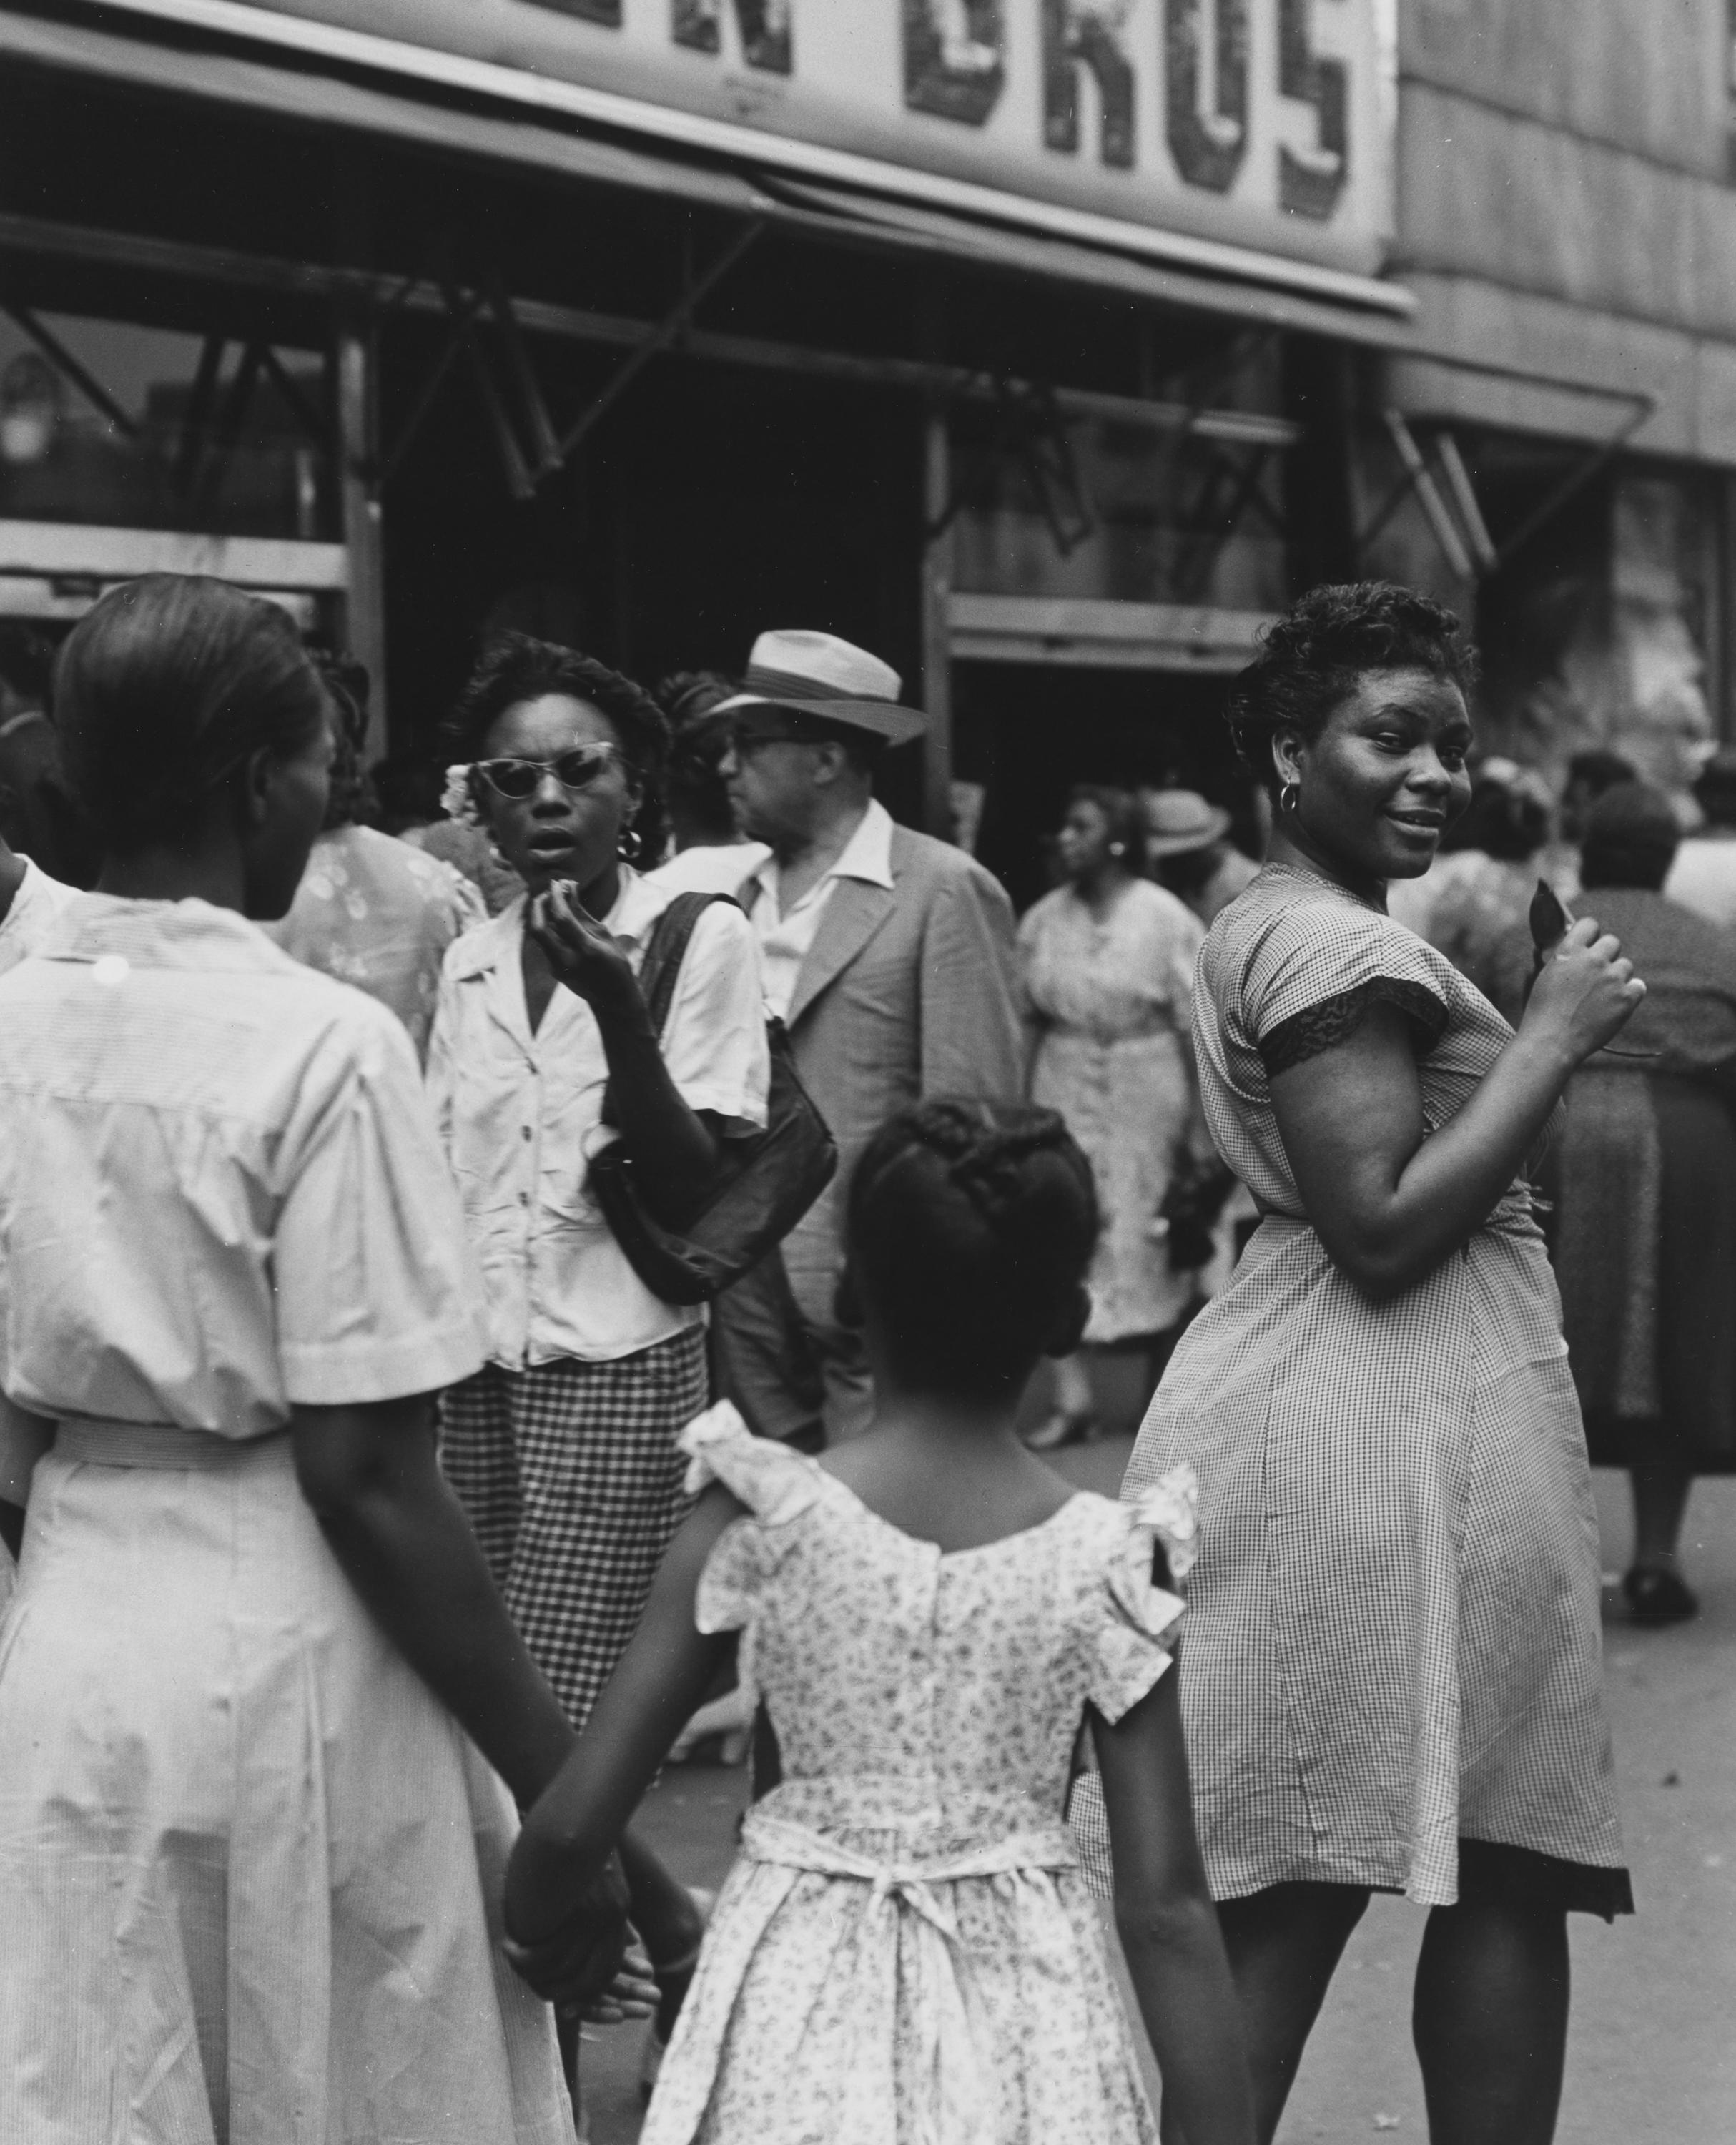 <p>Lady looking back at the camera, 125th Street. (© Todd Webb Archive) </p>